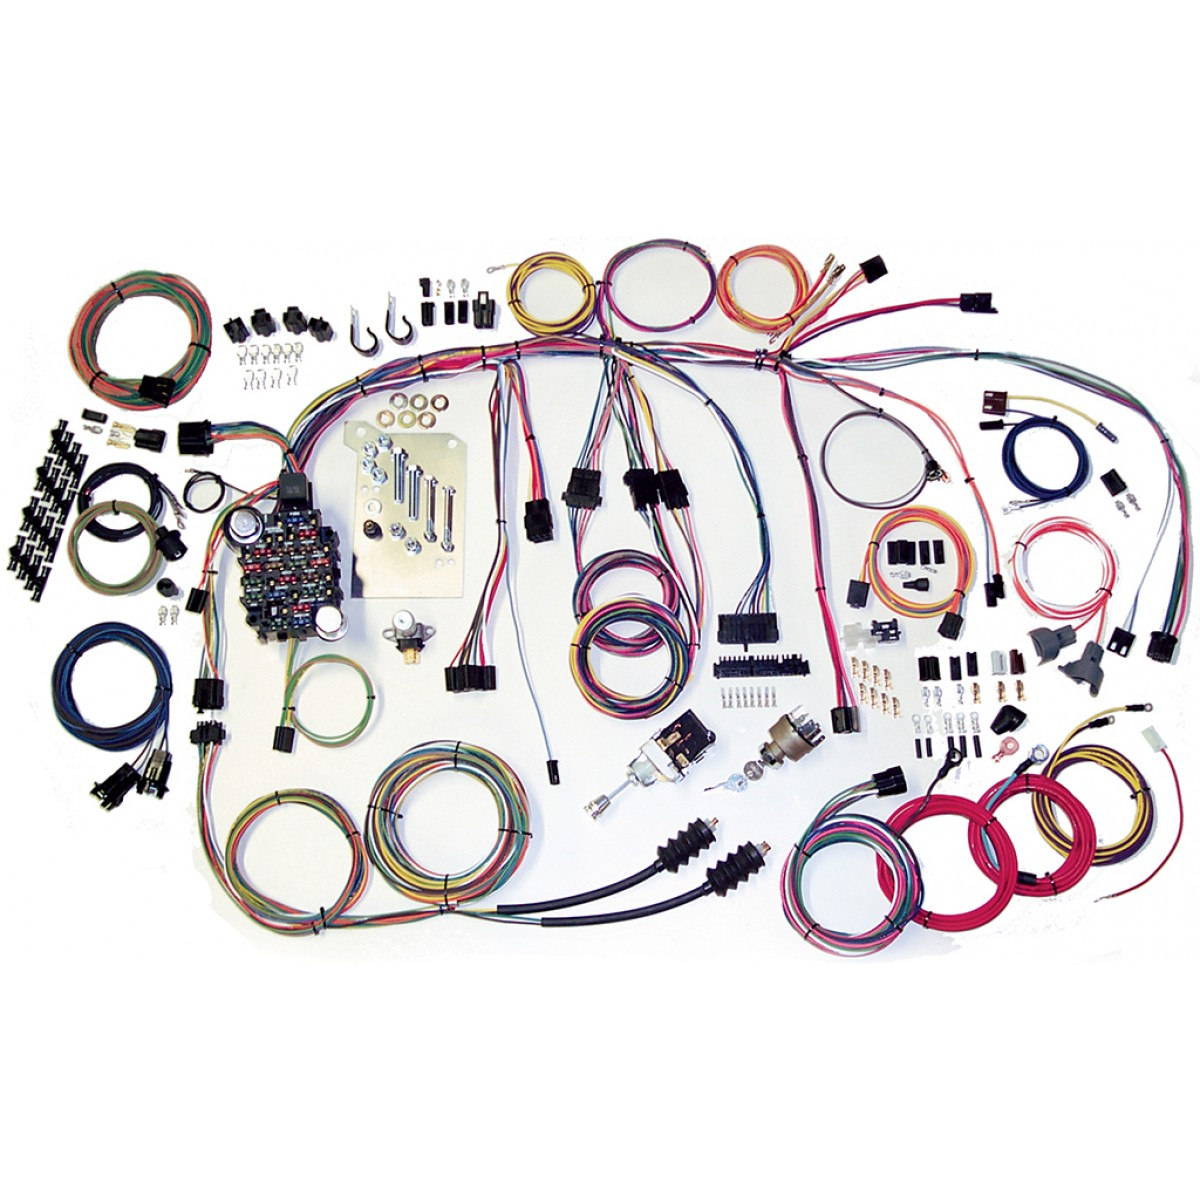 60 66 chevy truck wiring harness kit 1960 1966 chevy truck part 500560 chevy c10 c20 wiring harness chevy c10 wiring harness complete wiring harness kit 1960 1966 1965 chevy c10 wiring harness at alyssarenee.co